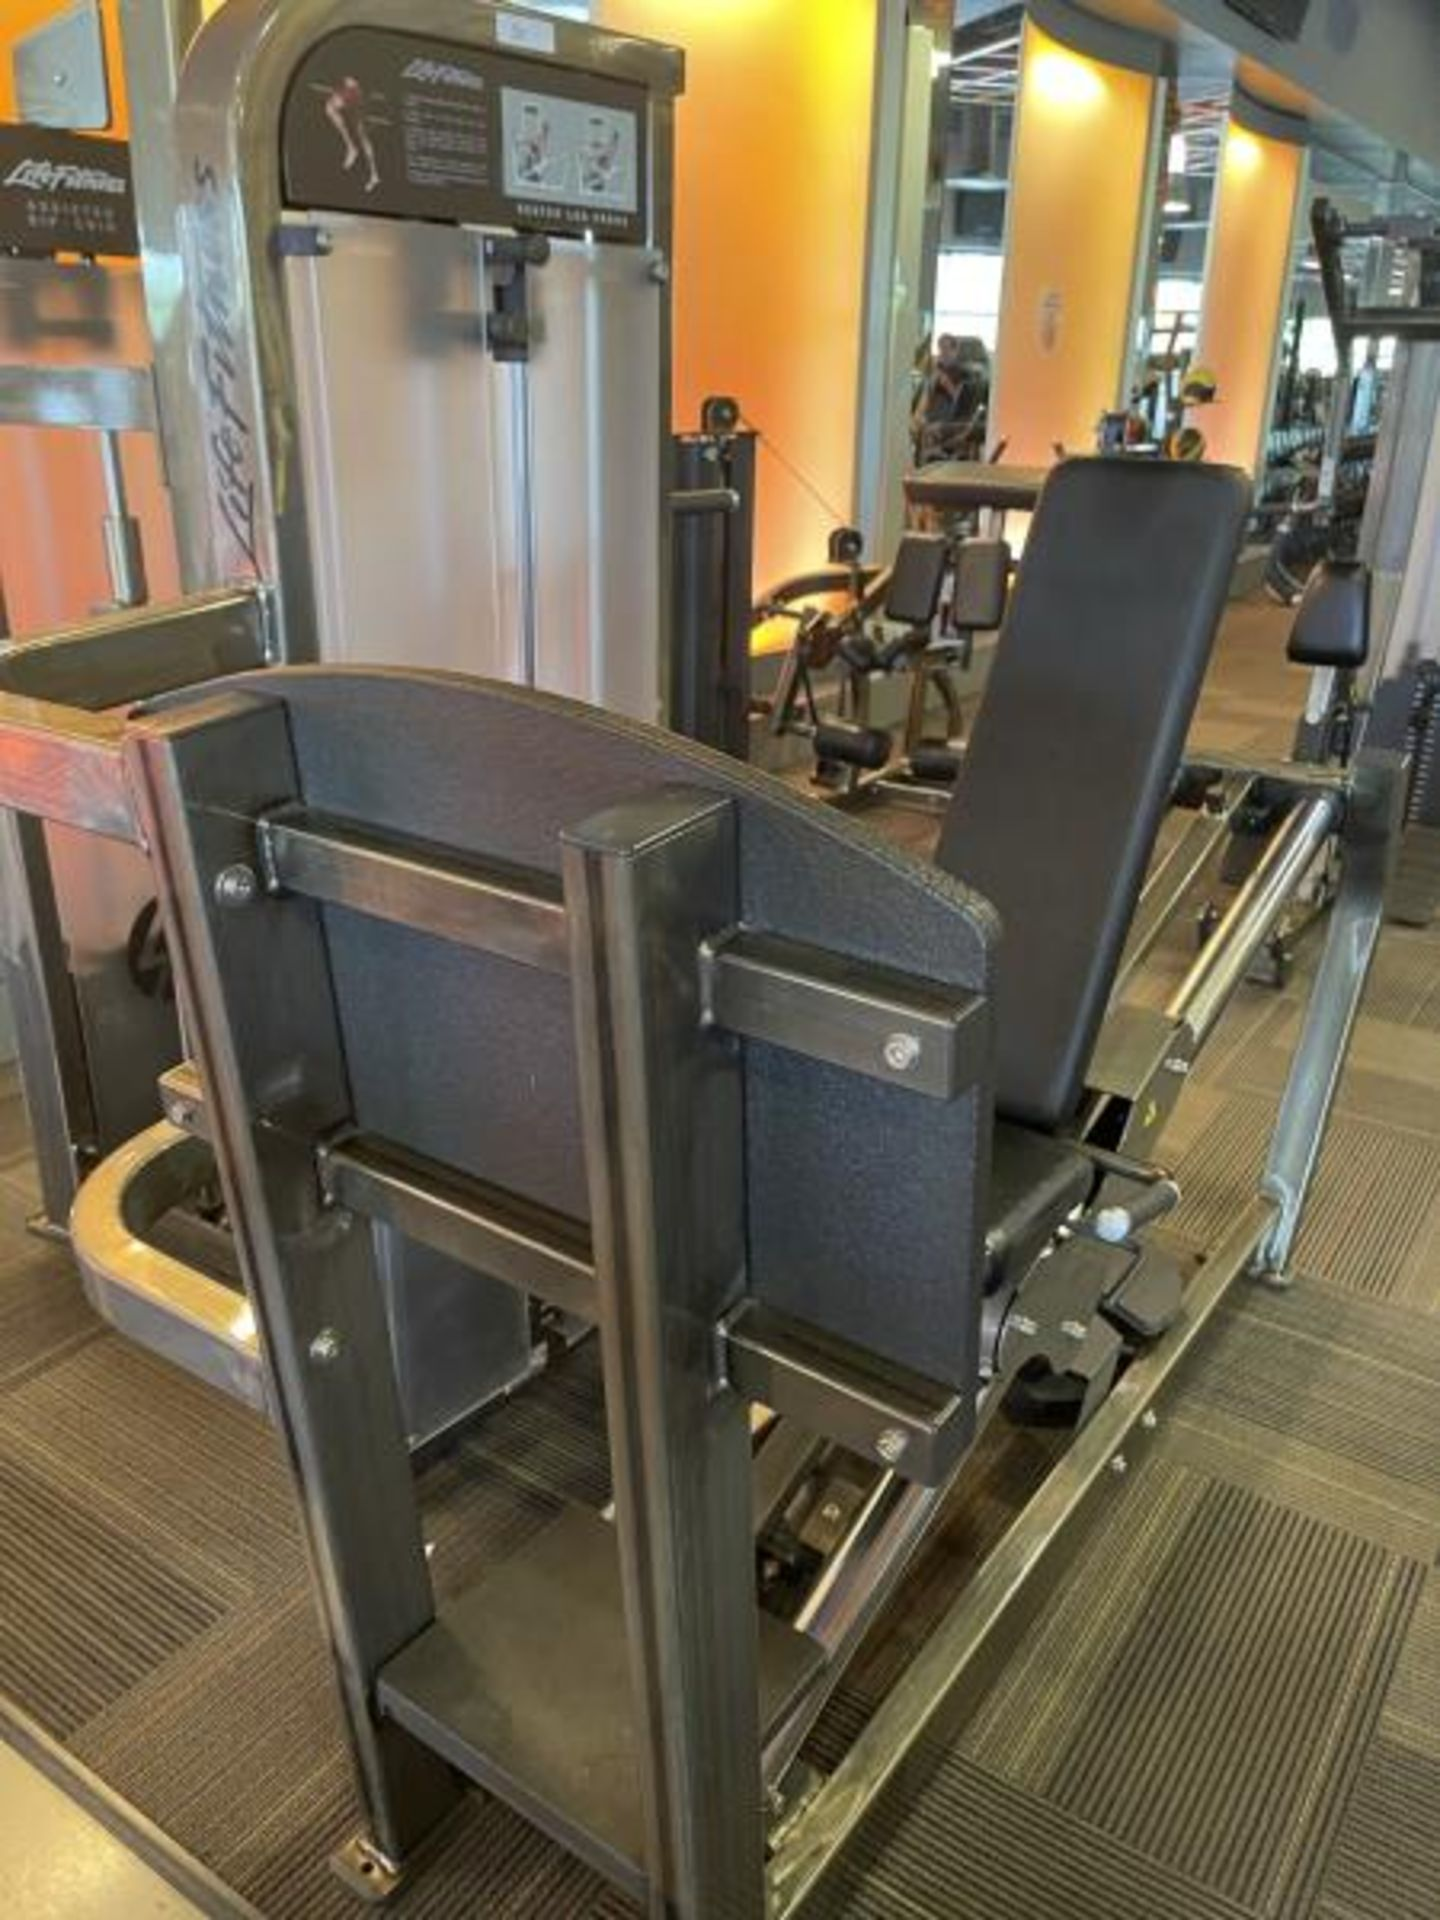 Lifer Fitness Seated Leg Press M:PSSLPE - Image 3 of 6